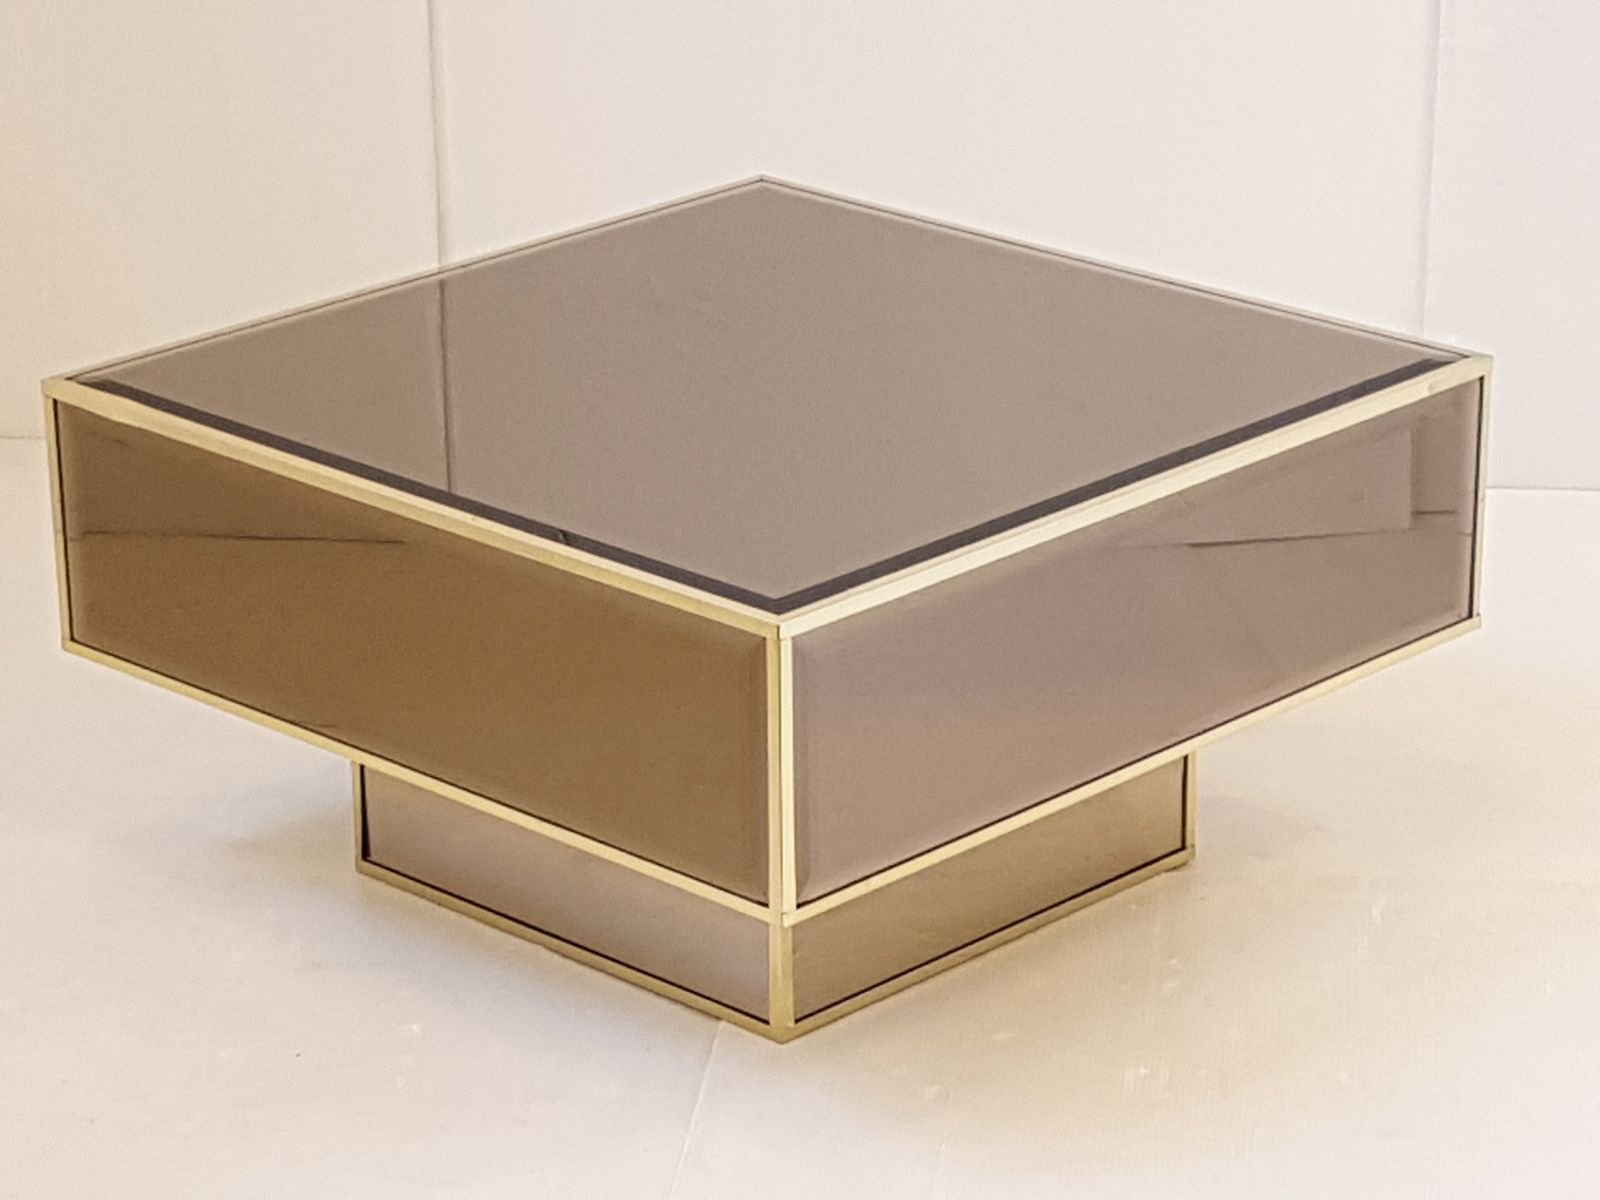 French Mirrored Glass Coffee Table from Roche Bobois 1970s for sale